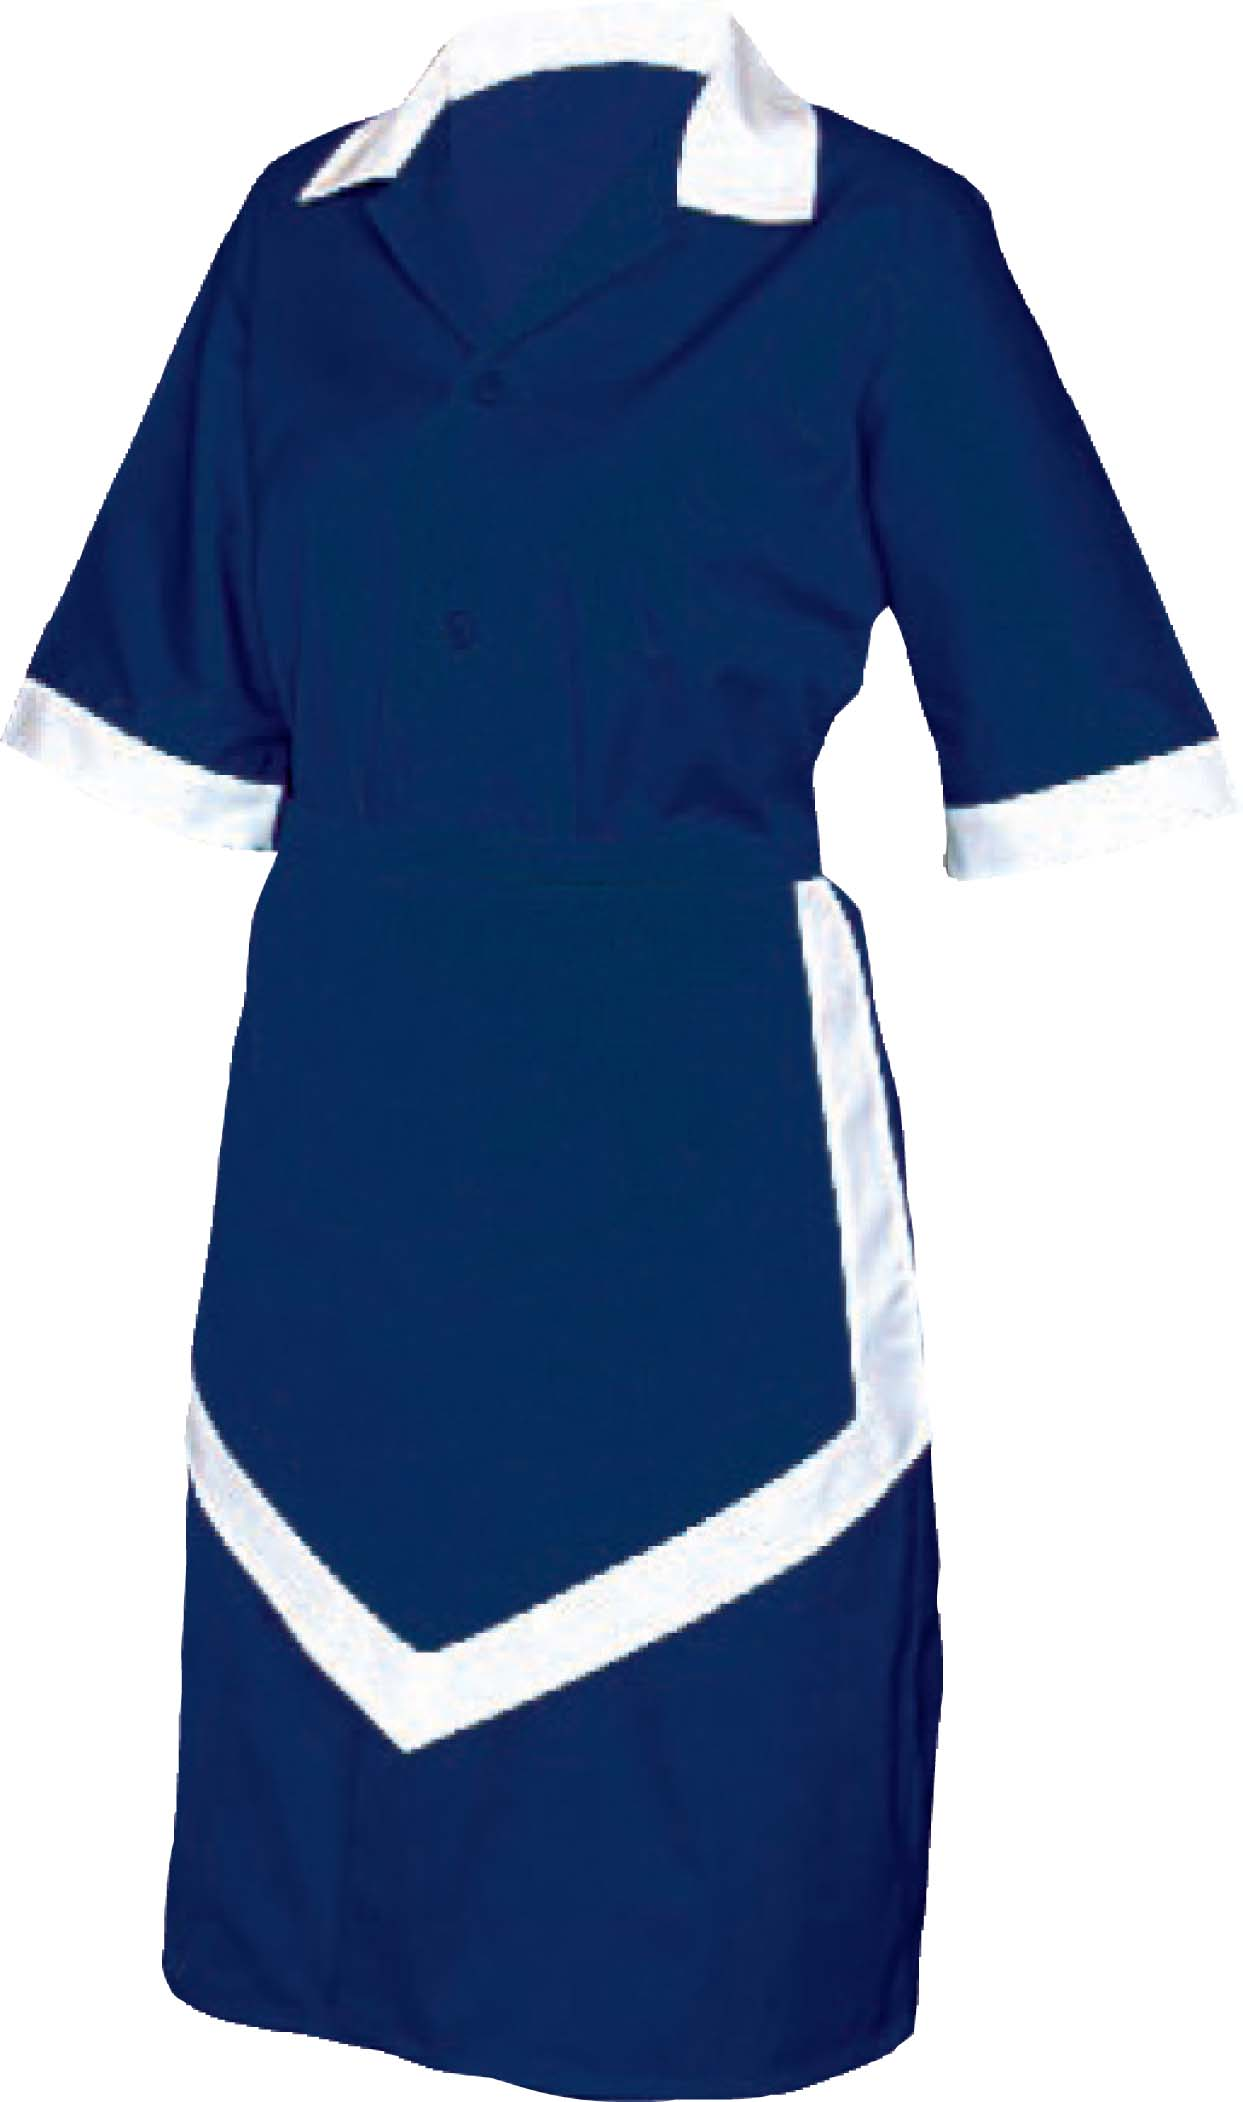 LADIES HOUSEKEEPING 3PC - NAVY AND WHITE - SMALL